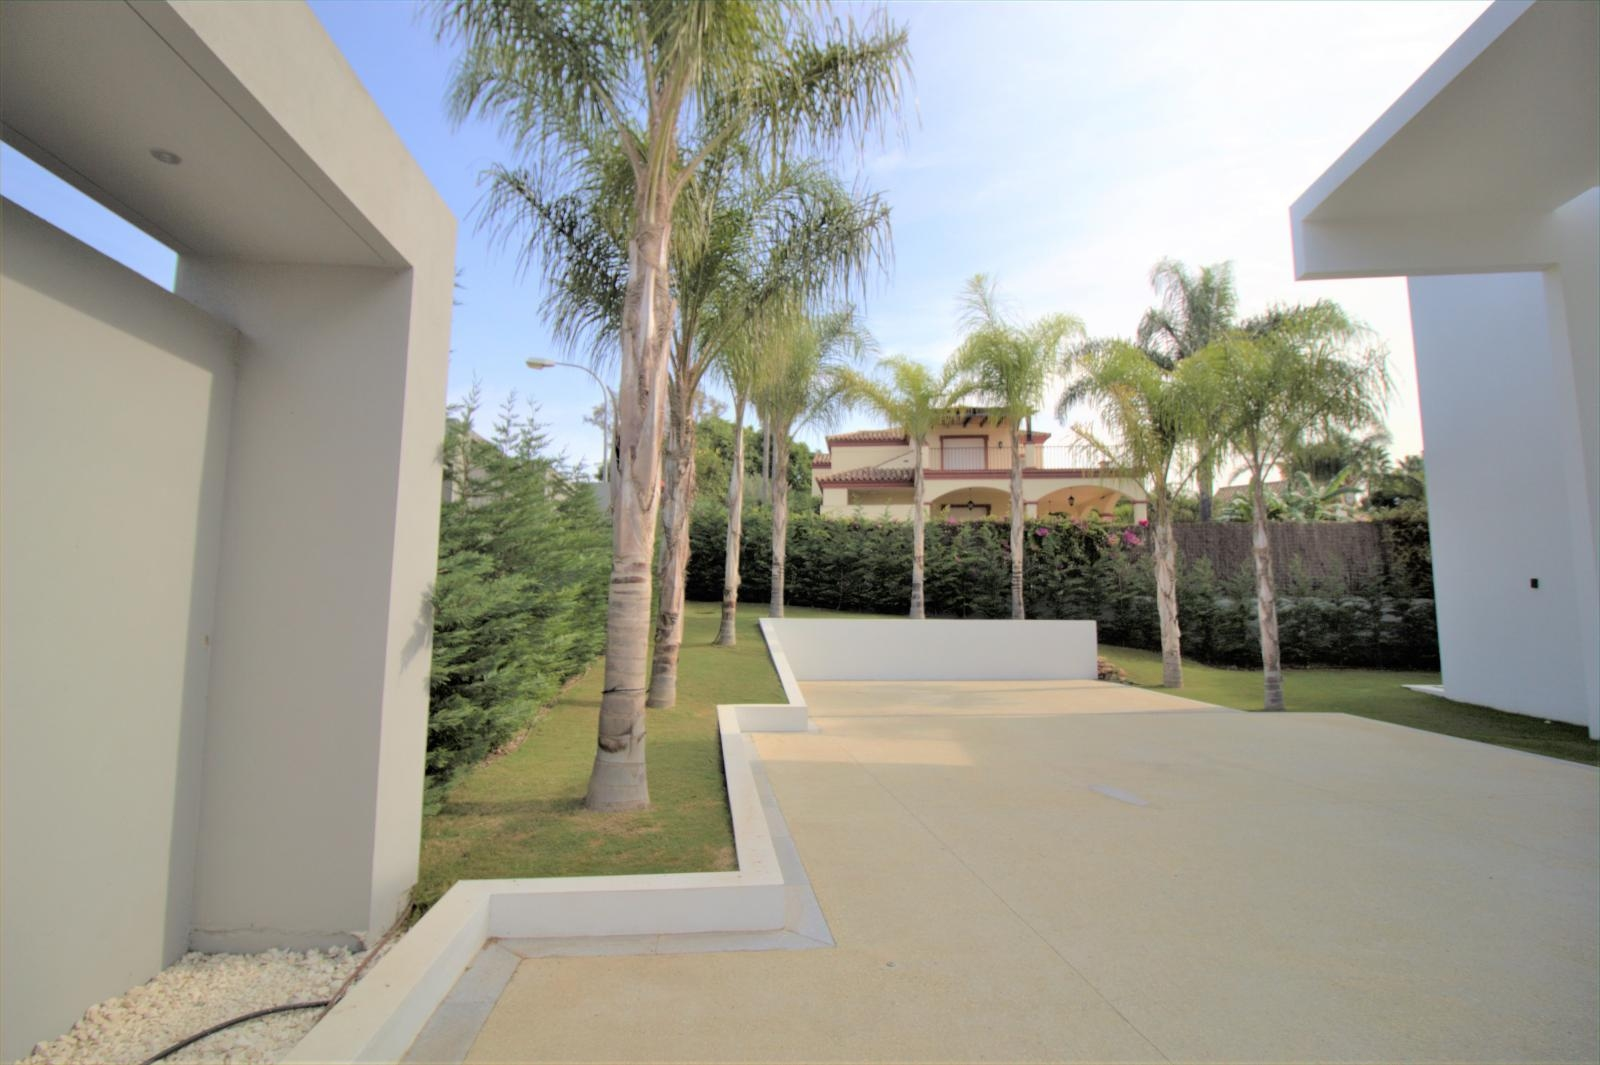 Villa for sale in San Pedro de Alcántara (Marbella)